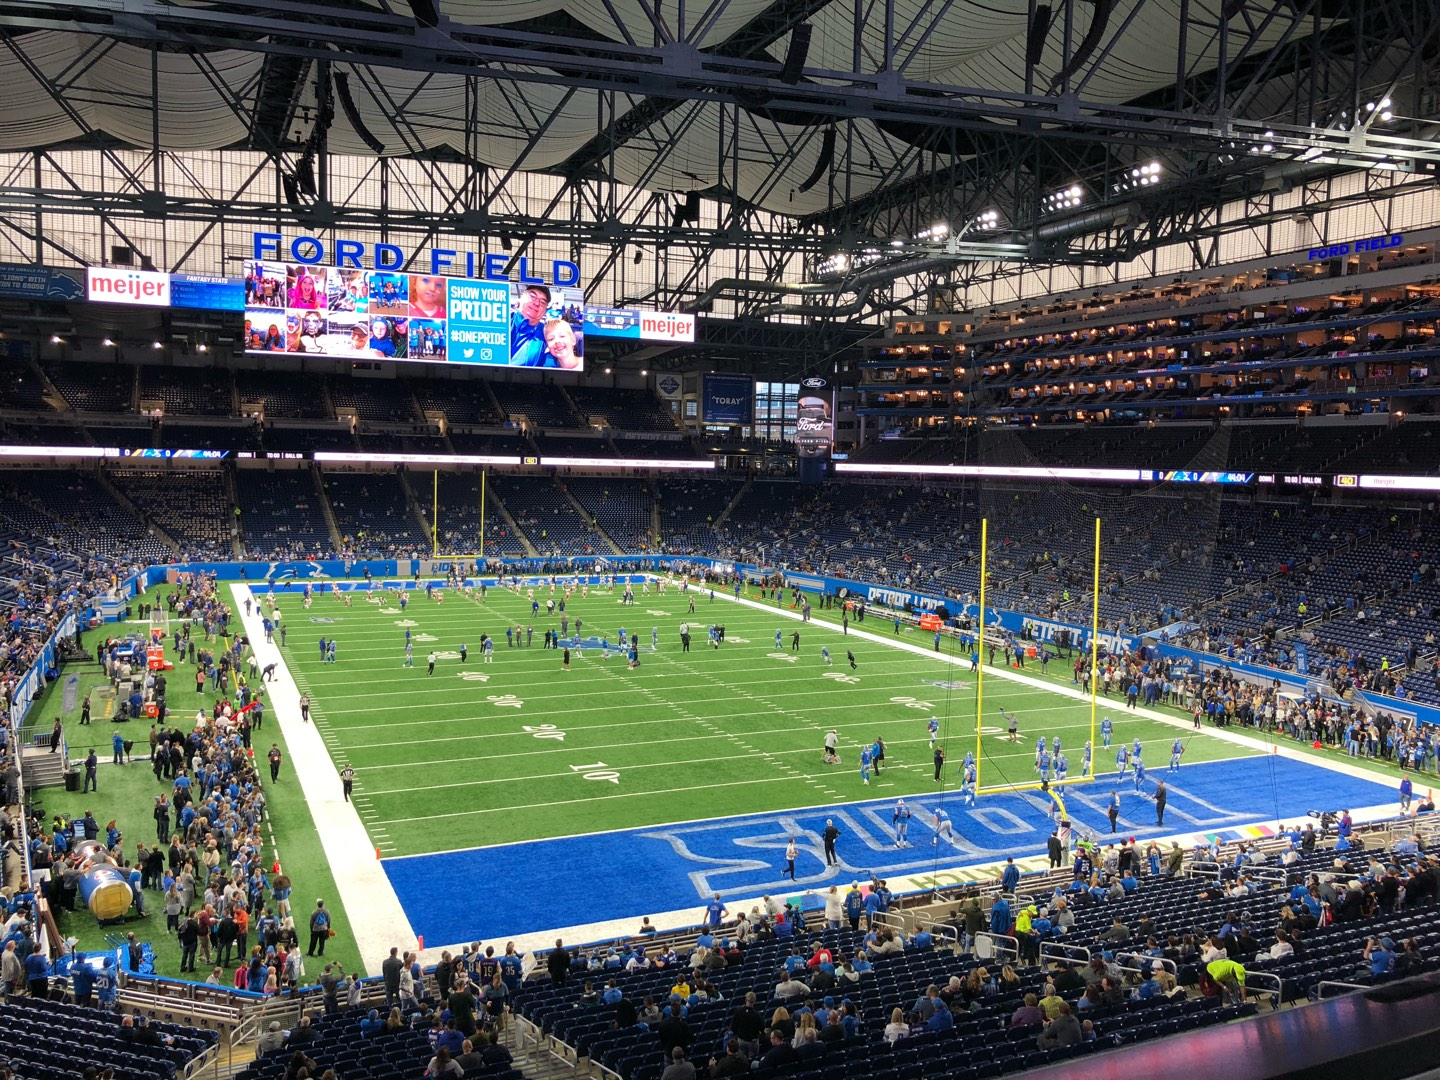 Ford Field Section 241 Row 1 Seat 6